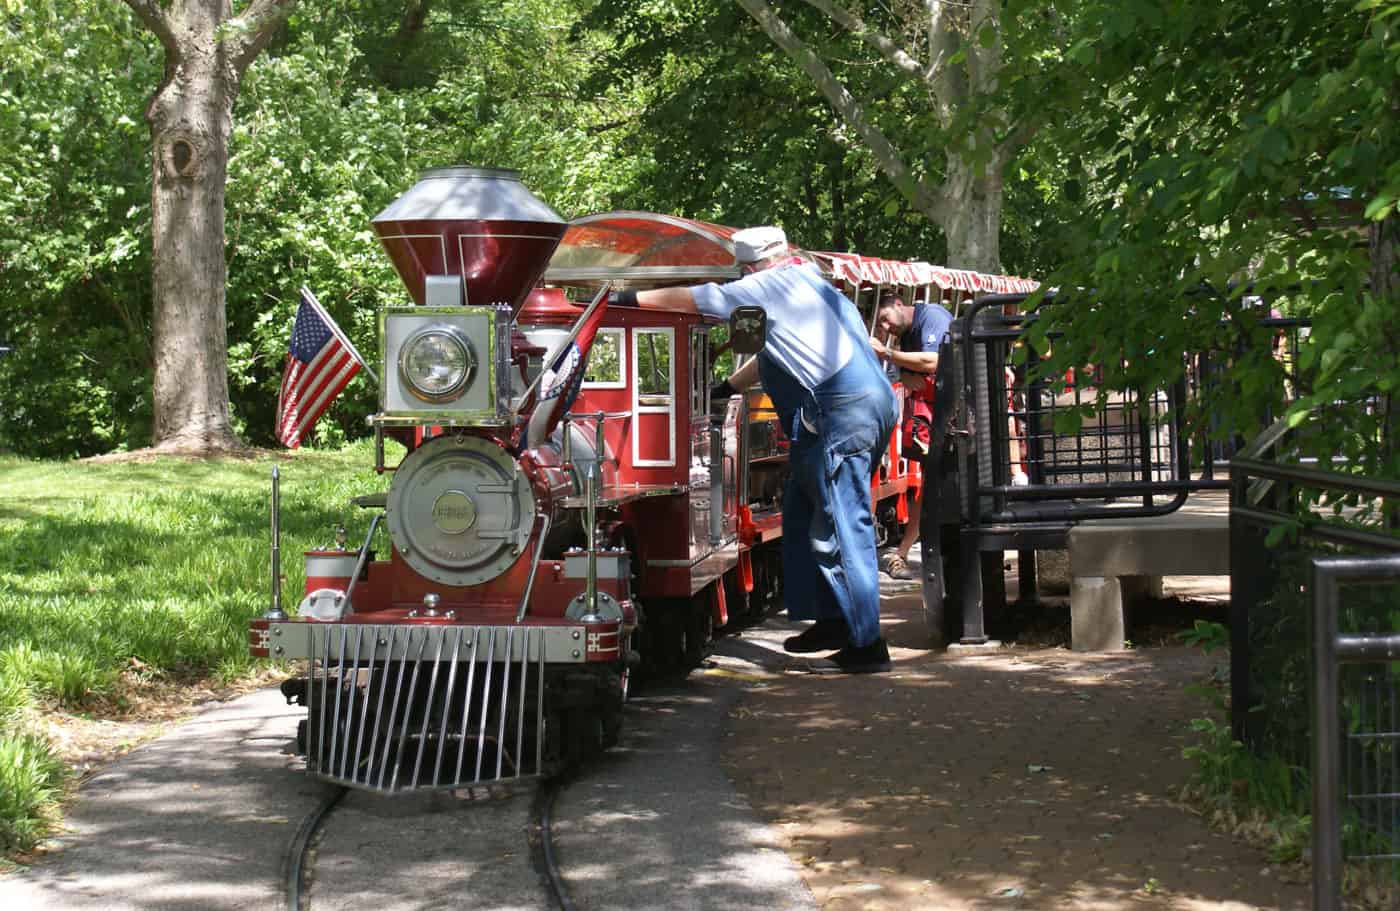 mini train at st. louis zoo